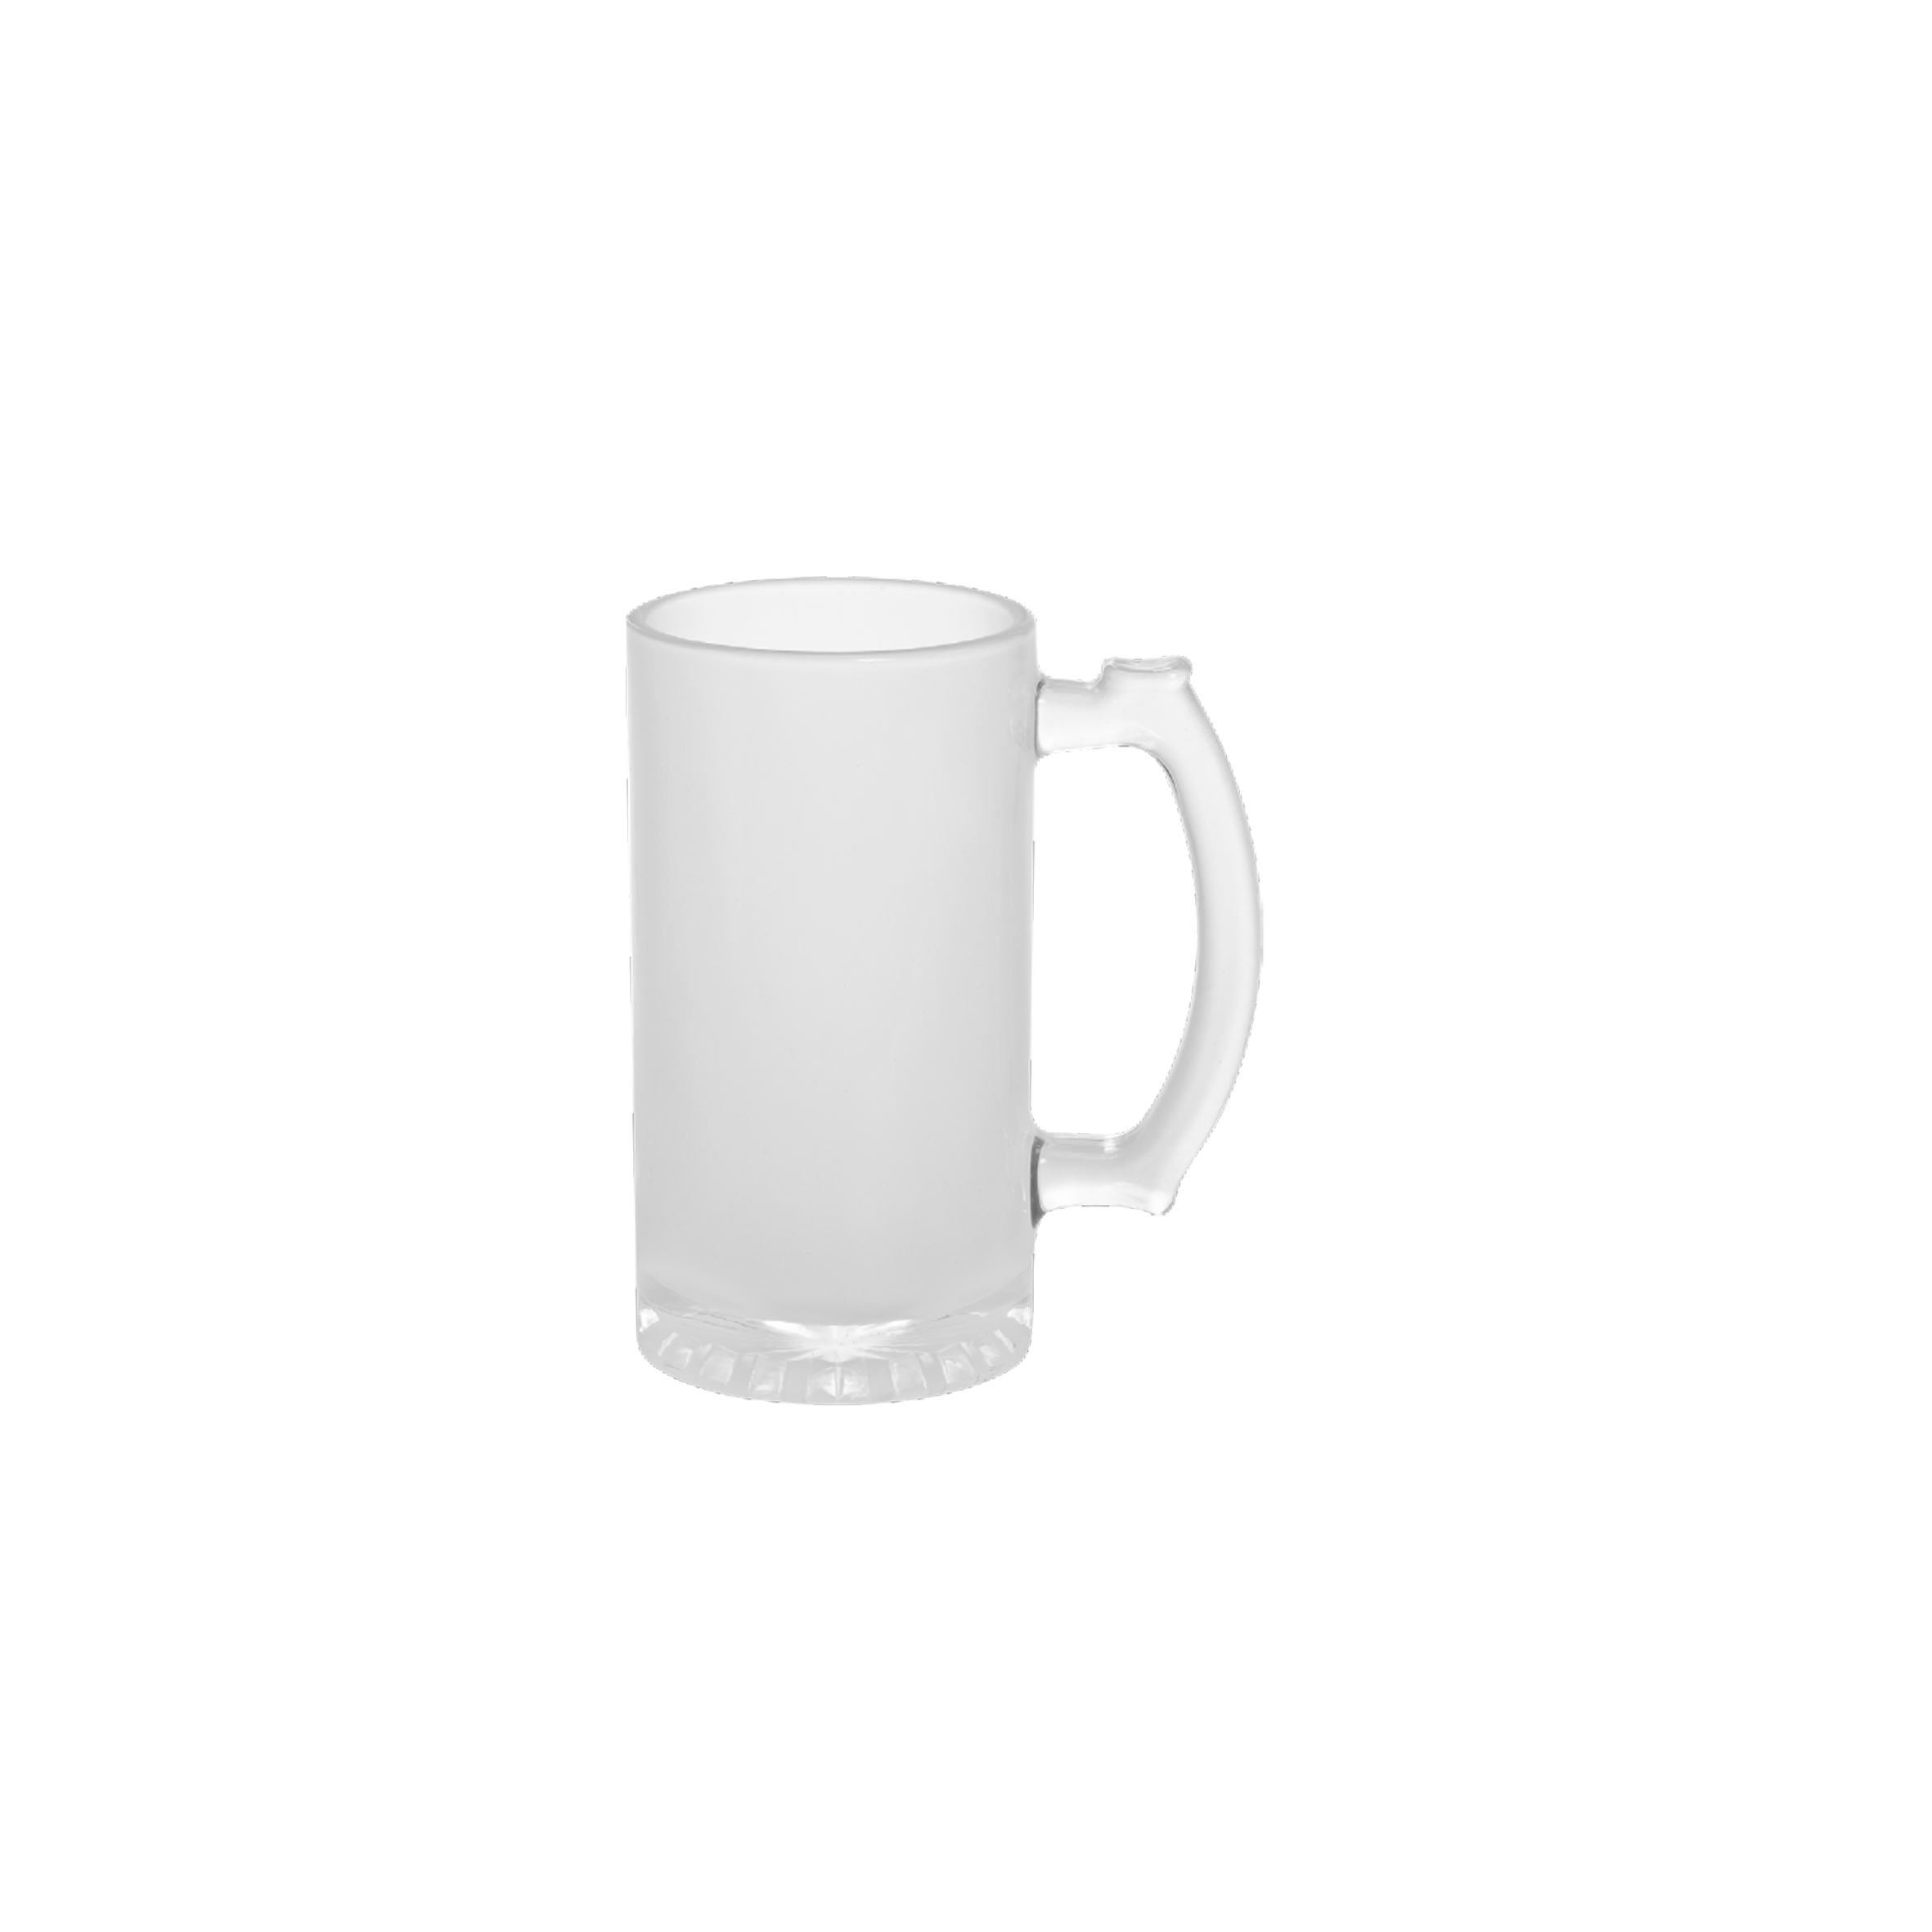 20 oz Frosted Glass Beer Cup